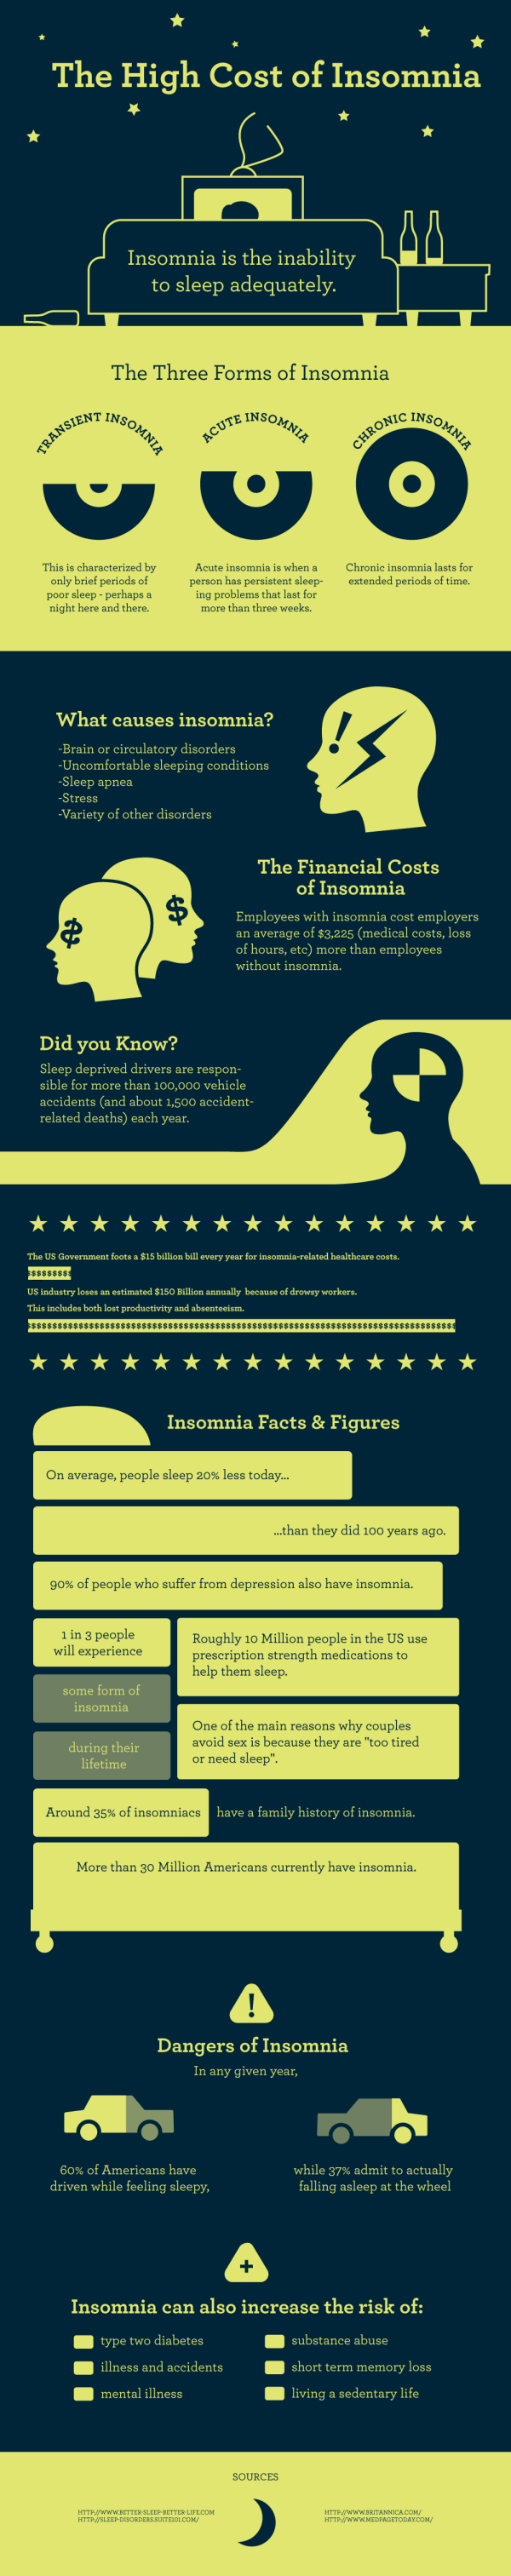 The High Cost of Insomnia.